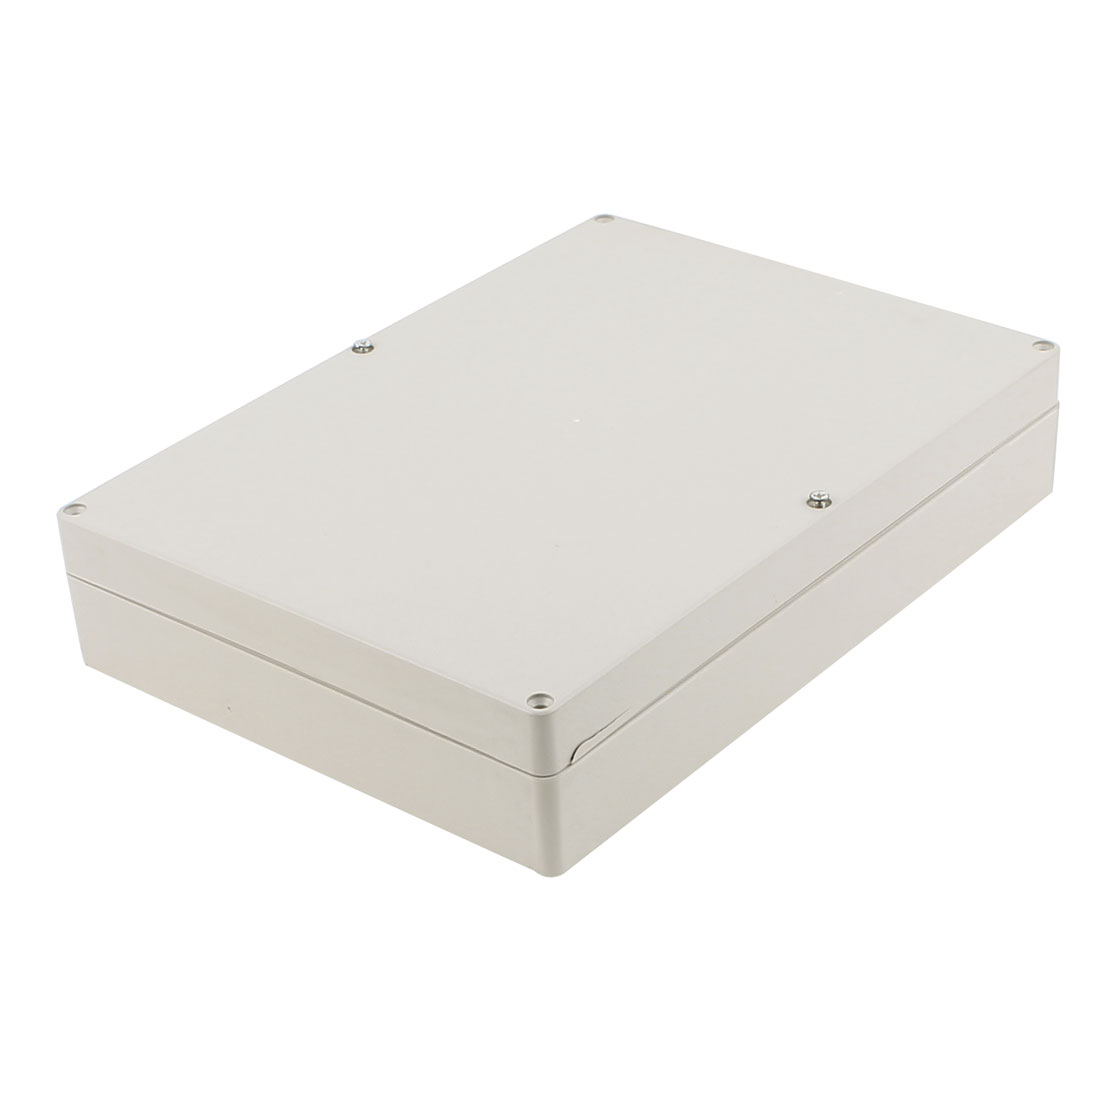 290 x 210 x 60mm Dustproof IP65 Junction Box Terminal Connecting Box Enclosure